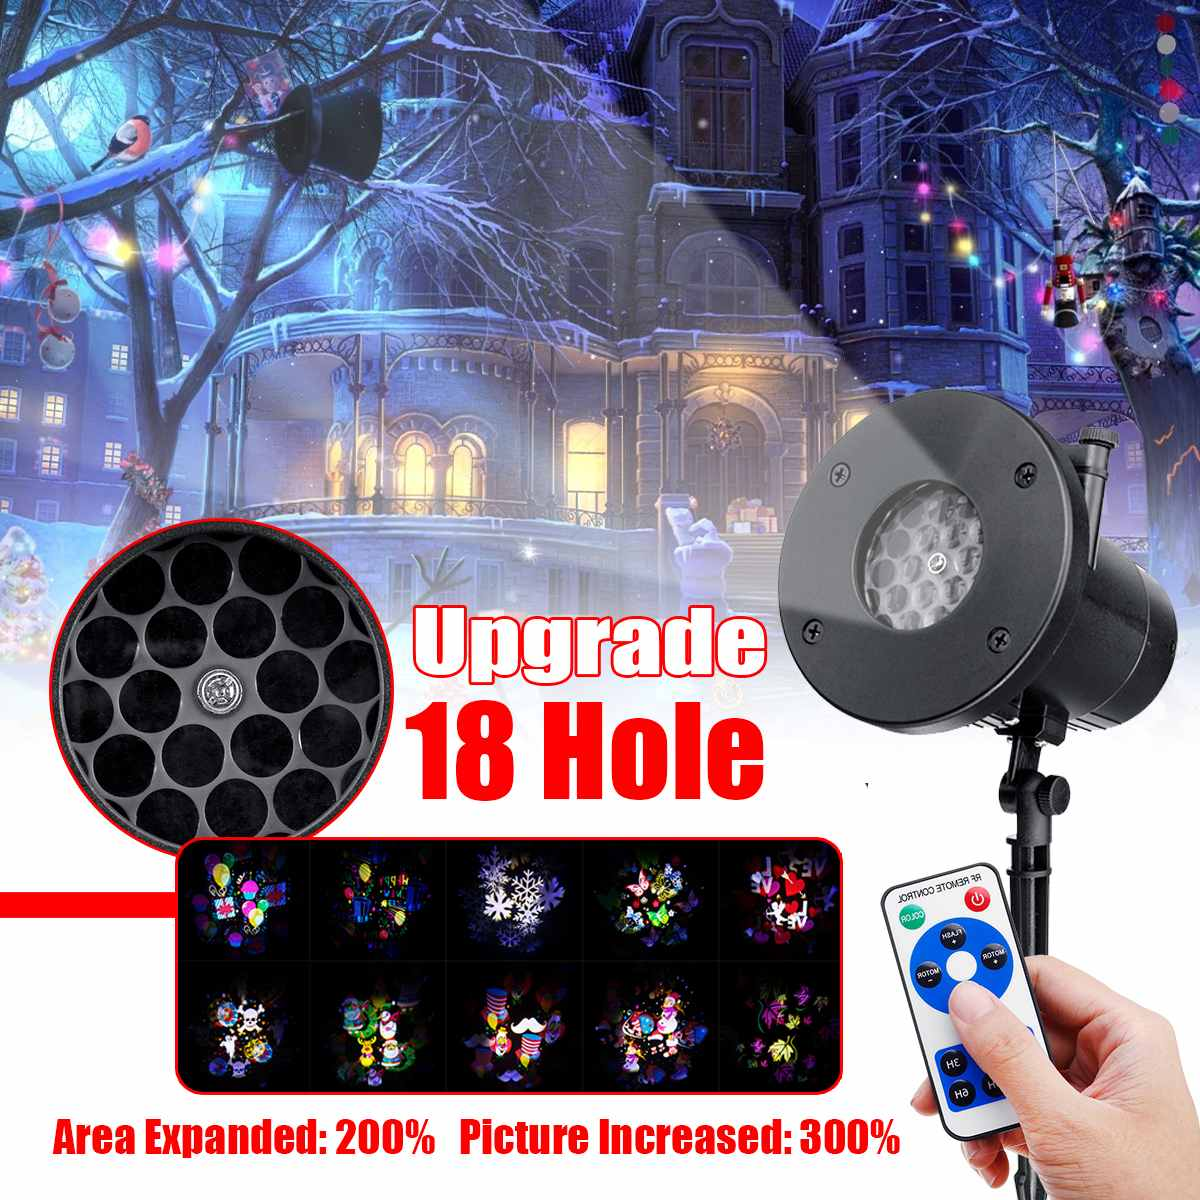 Projector Lamp 18 Holes Outdoor Landscape Light Christmas Halloween Party Garden Decoration Remote Control Holiday Lighting